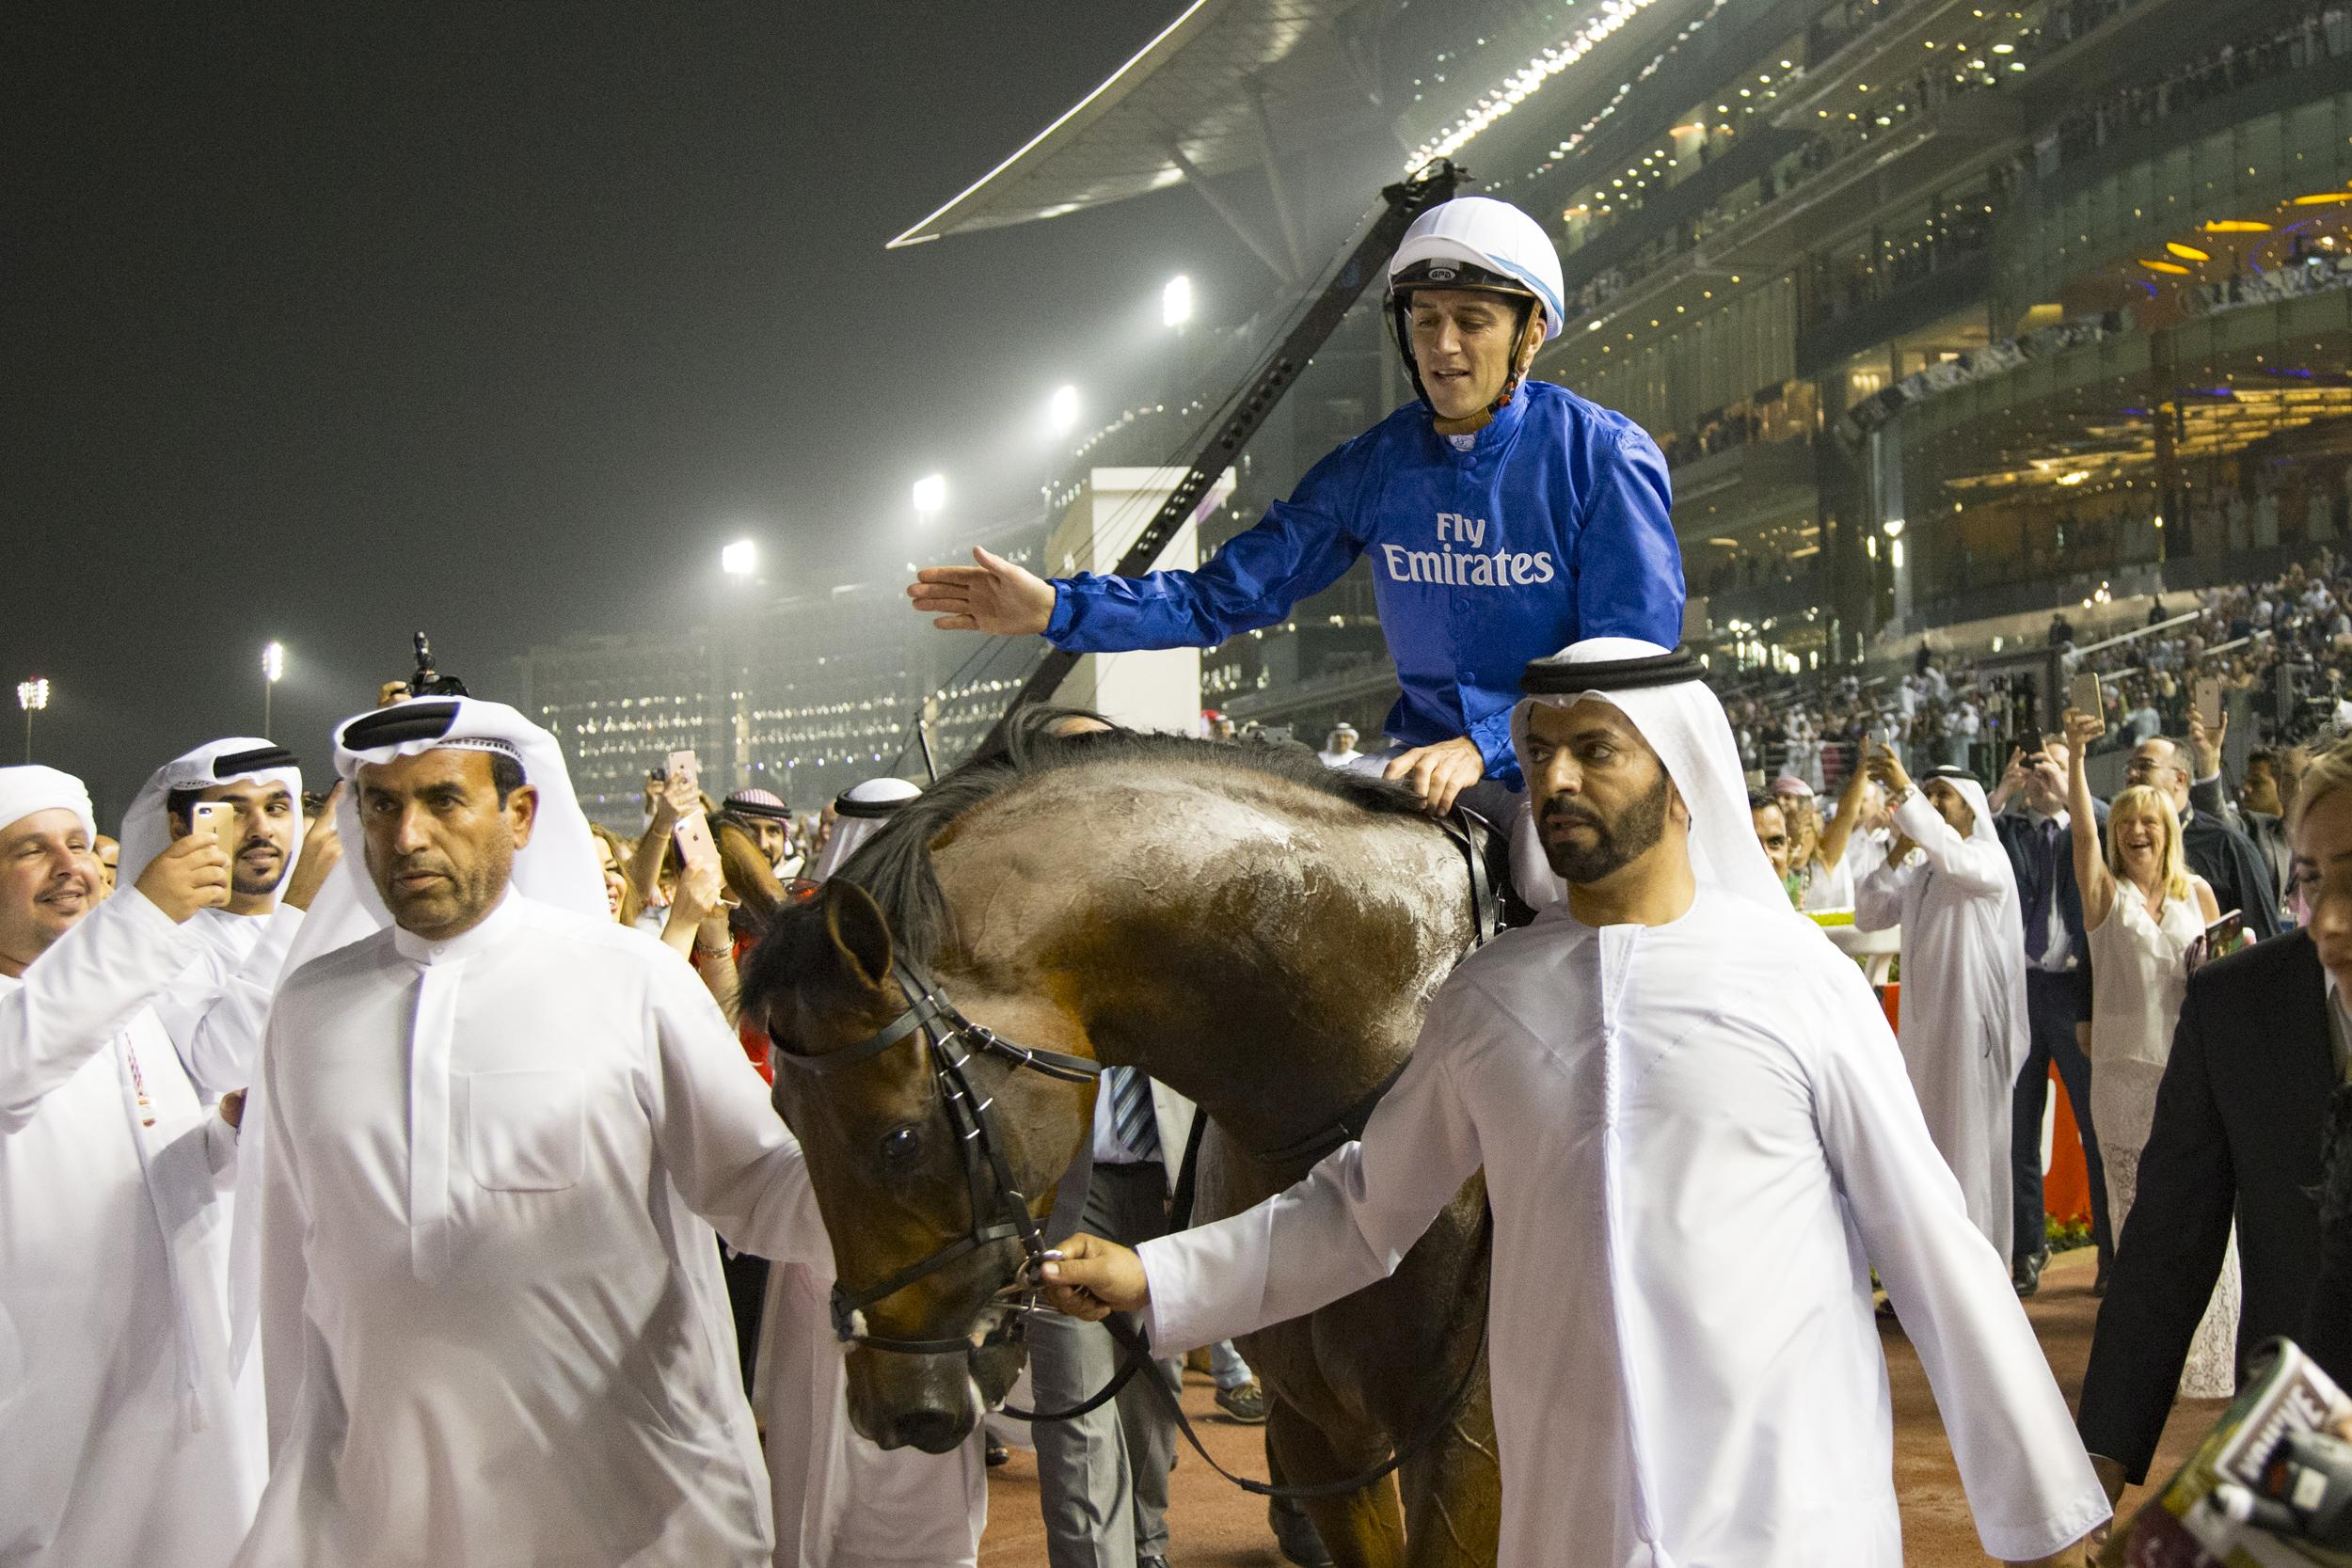 Thunder Snow and his Godolphin team enter the winner's circle.